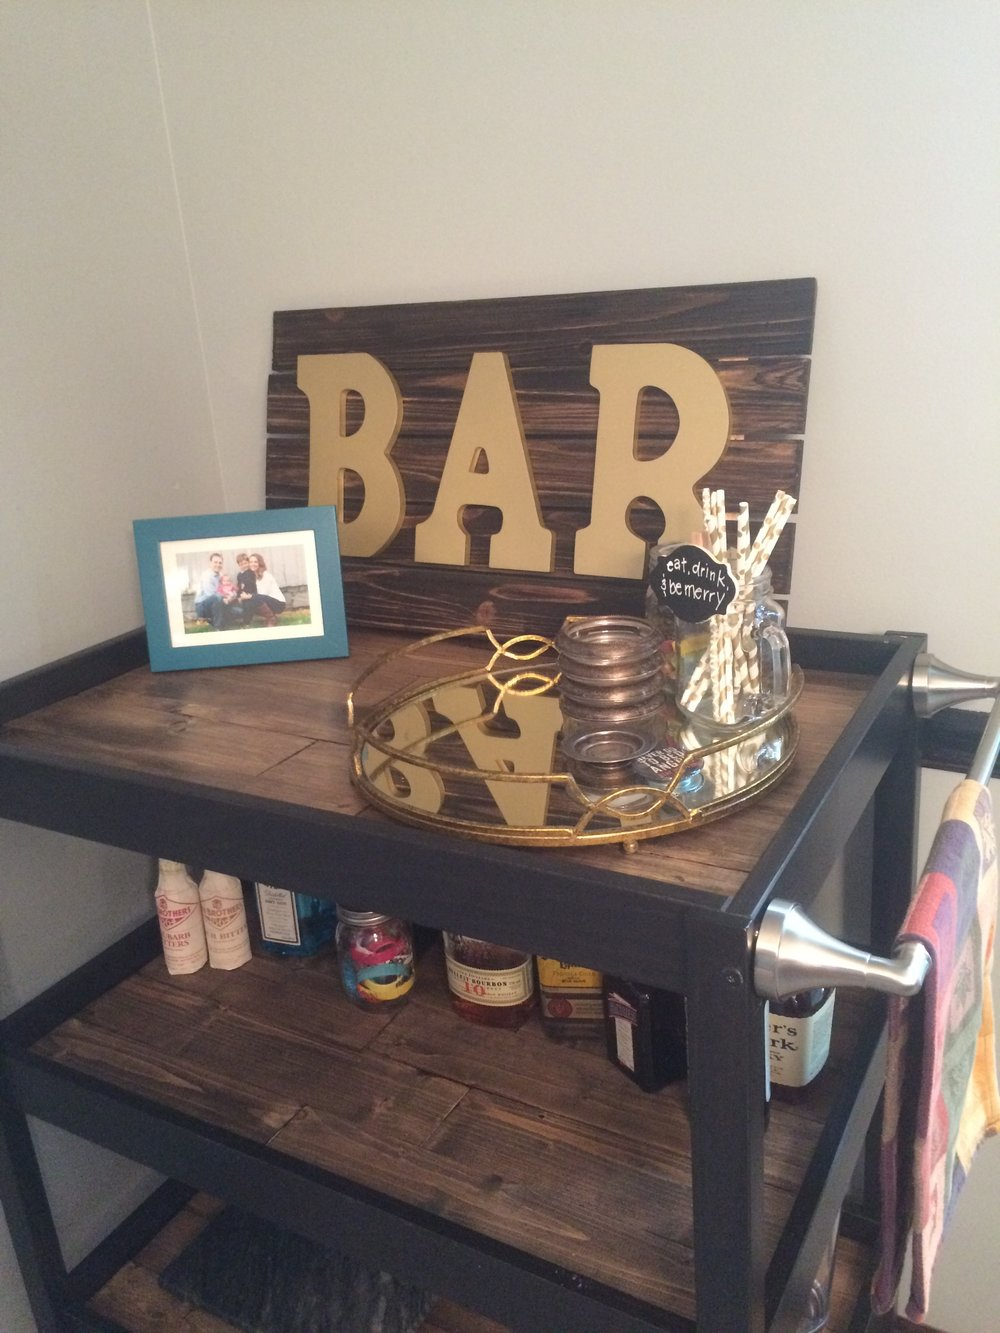 Newly finished bar cart!